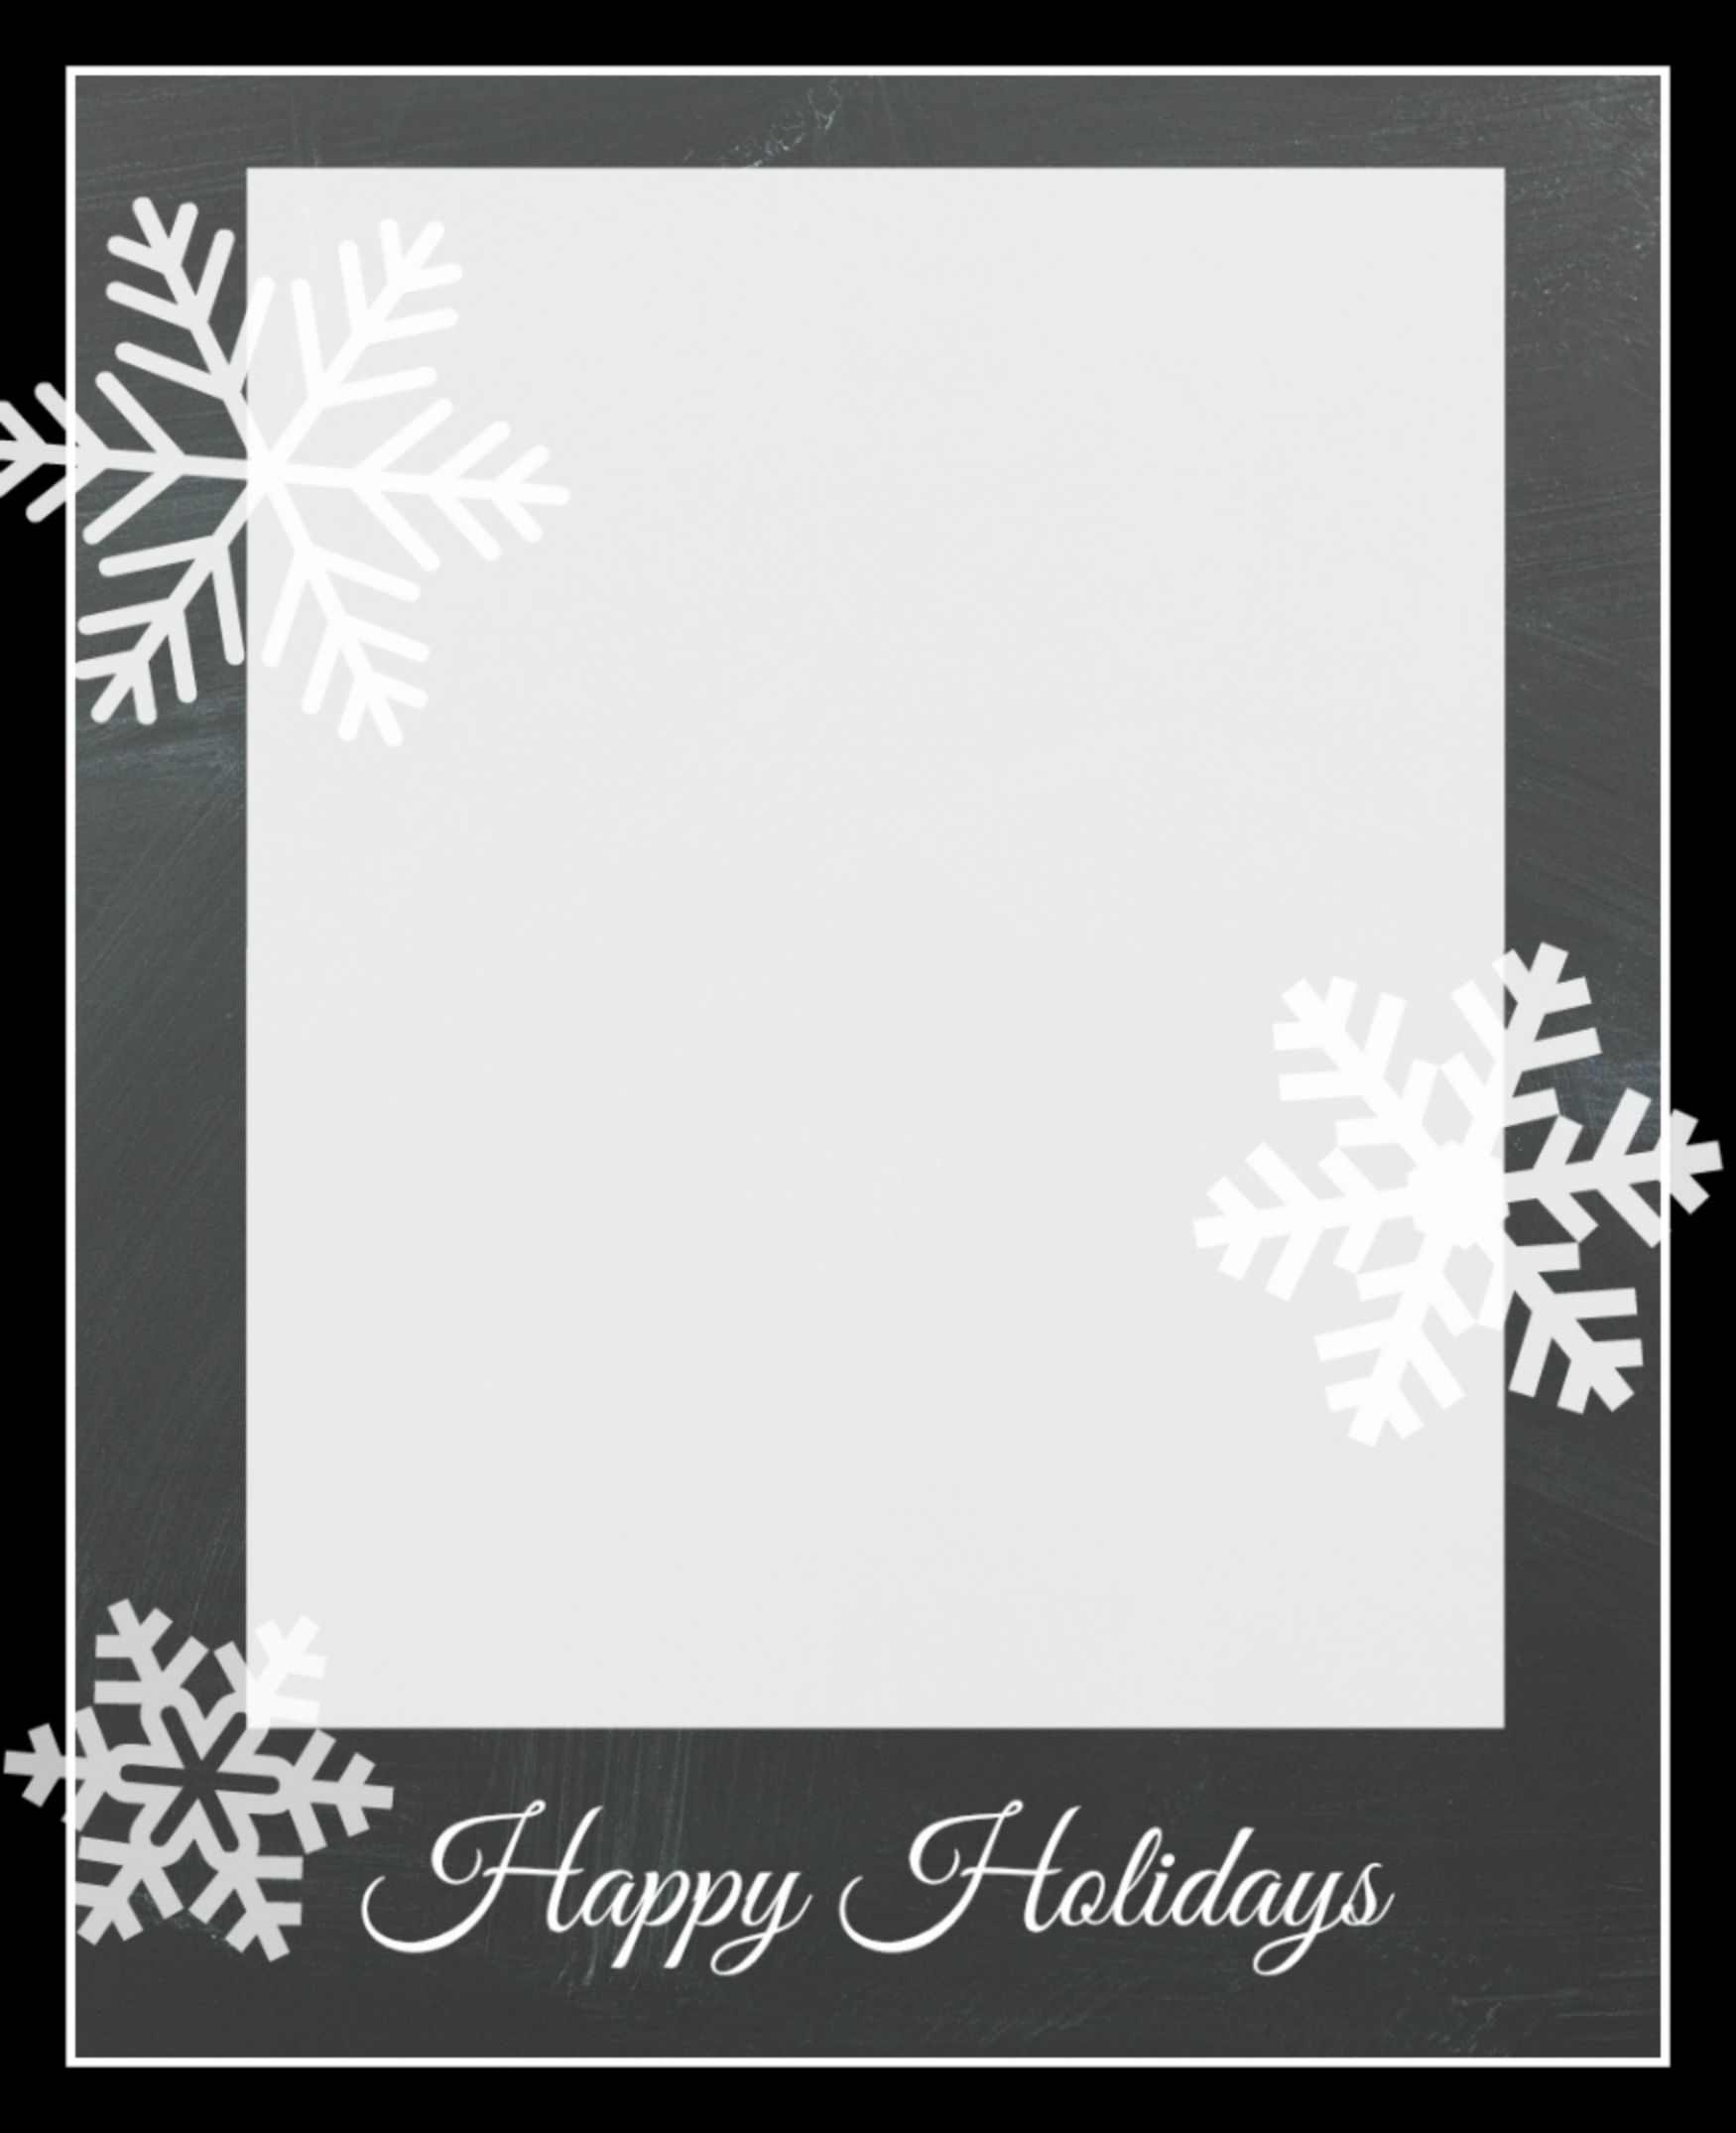 009 Beautiful Free Photo Christma Card Template Image  Templates For Photoshop OnlineFull